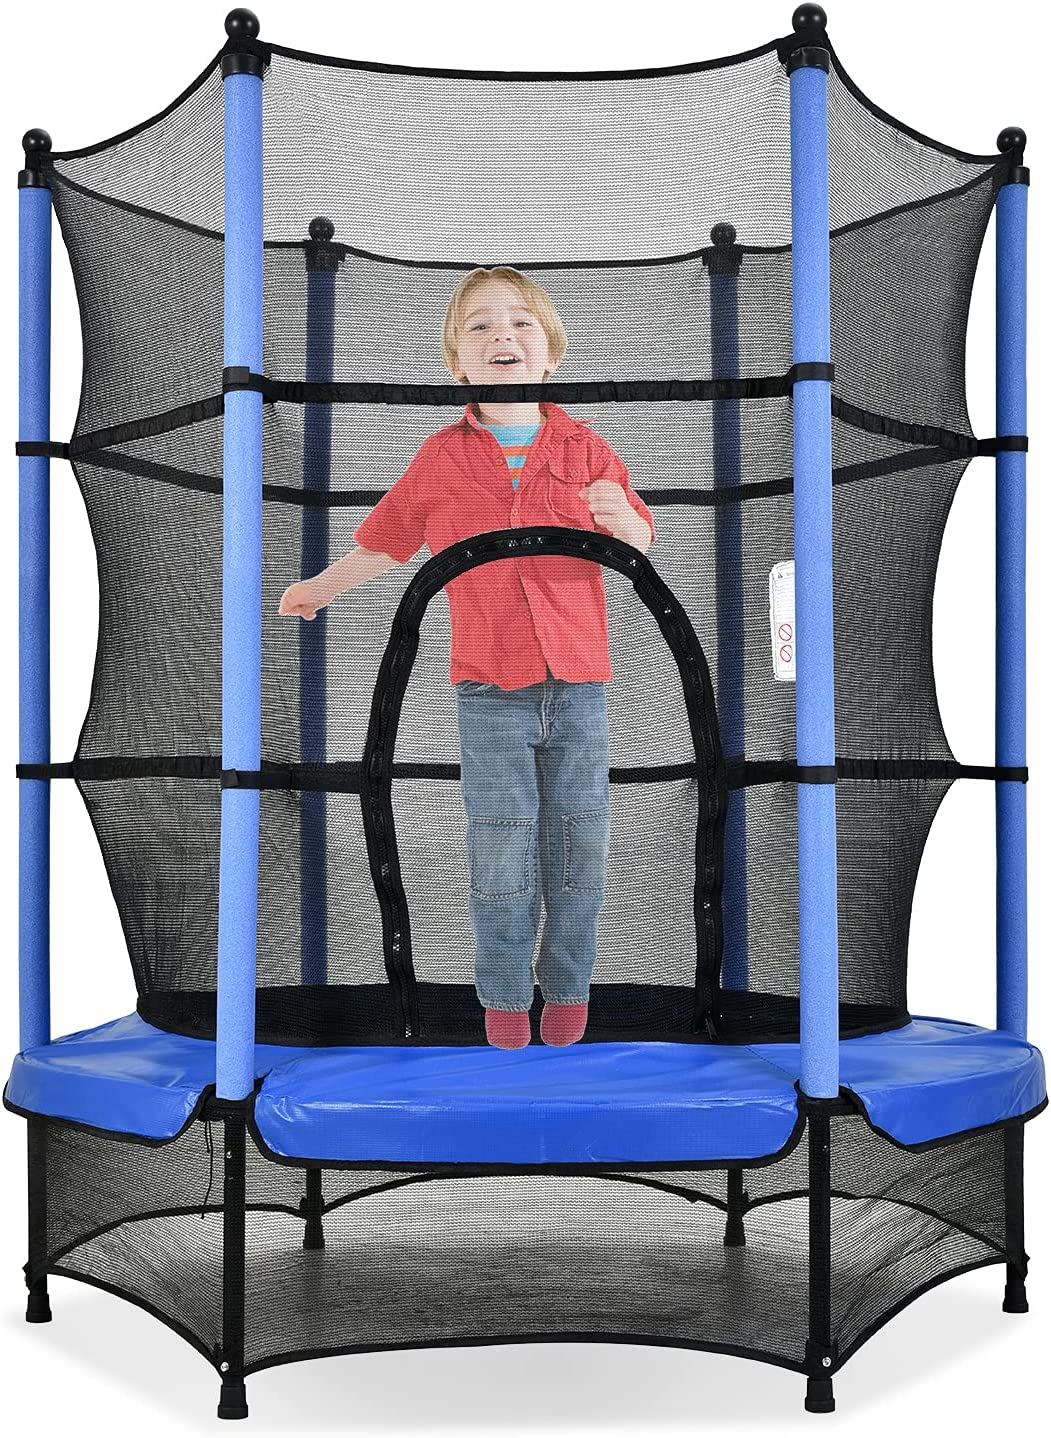 Trampoline with Net Enclosure 55 online shopping Mini Inch Manufacturer direct delivery